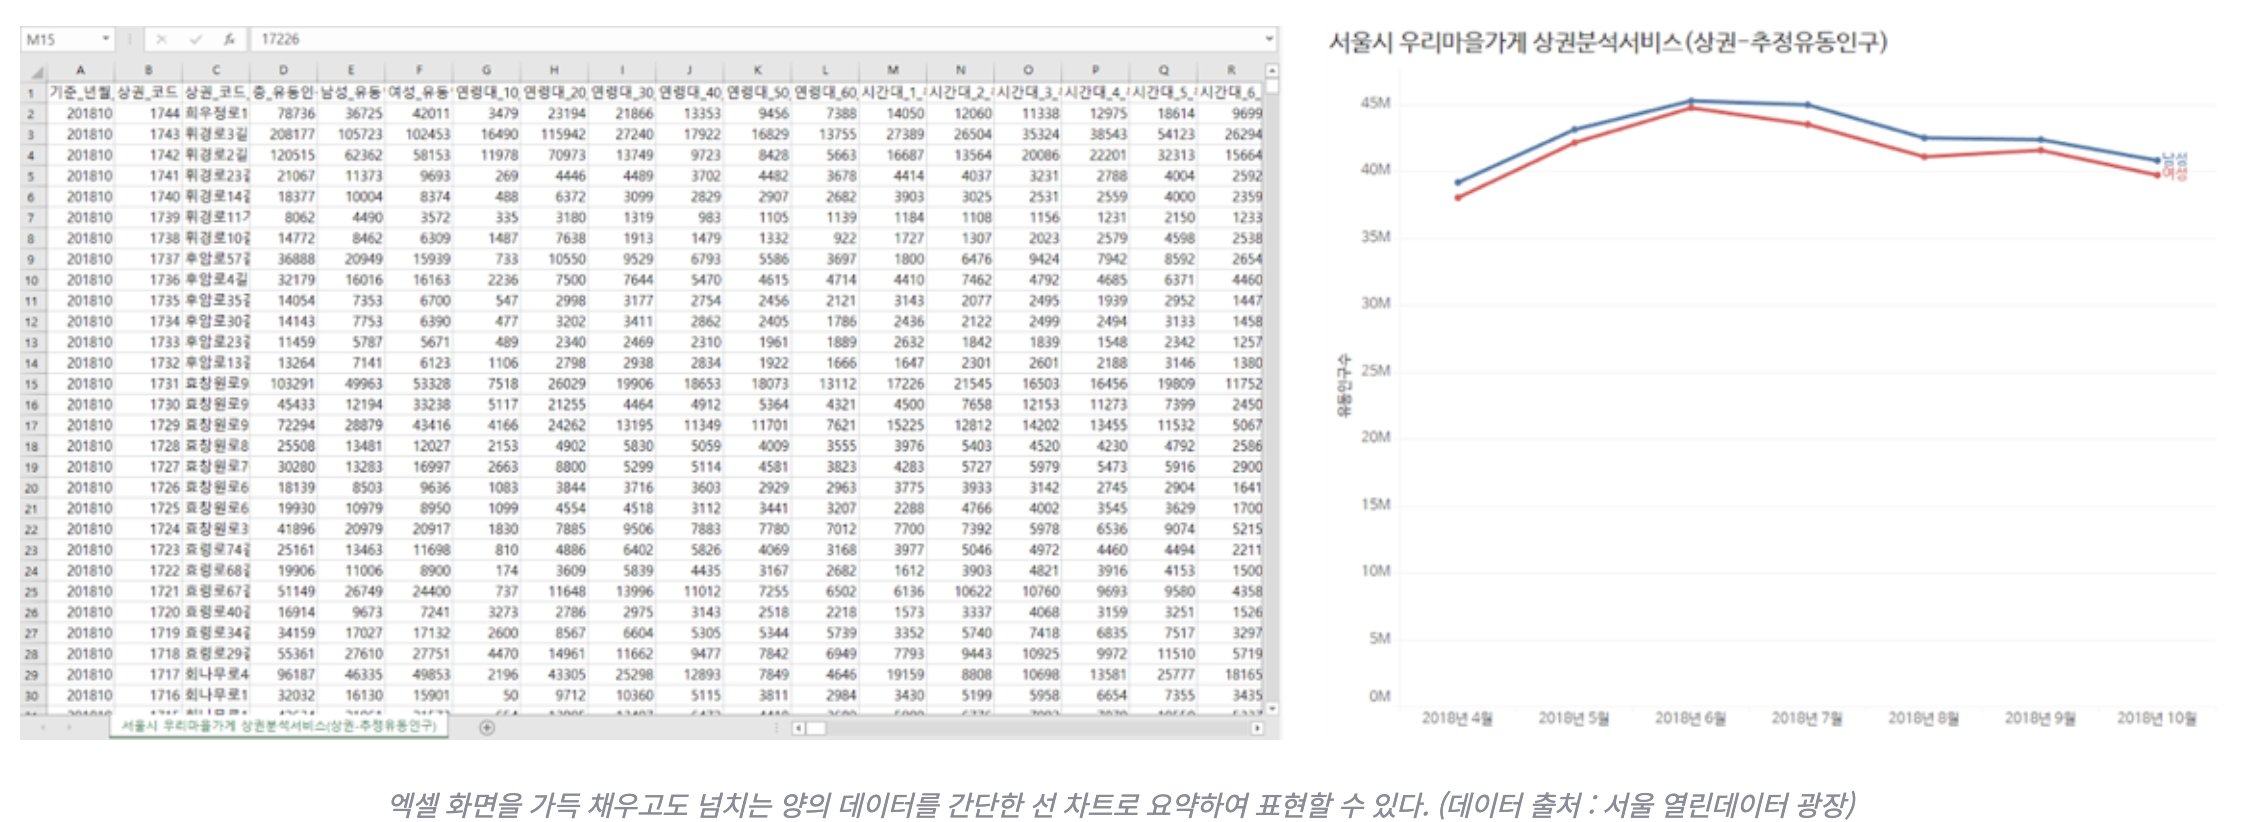 출처: http://newsjel.ly/archives/newsjelly-report/visualization-report/9145